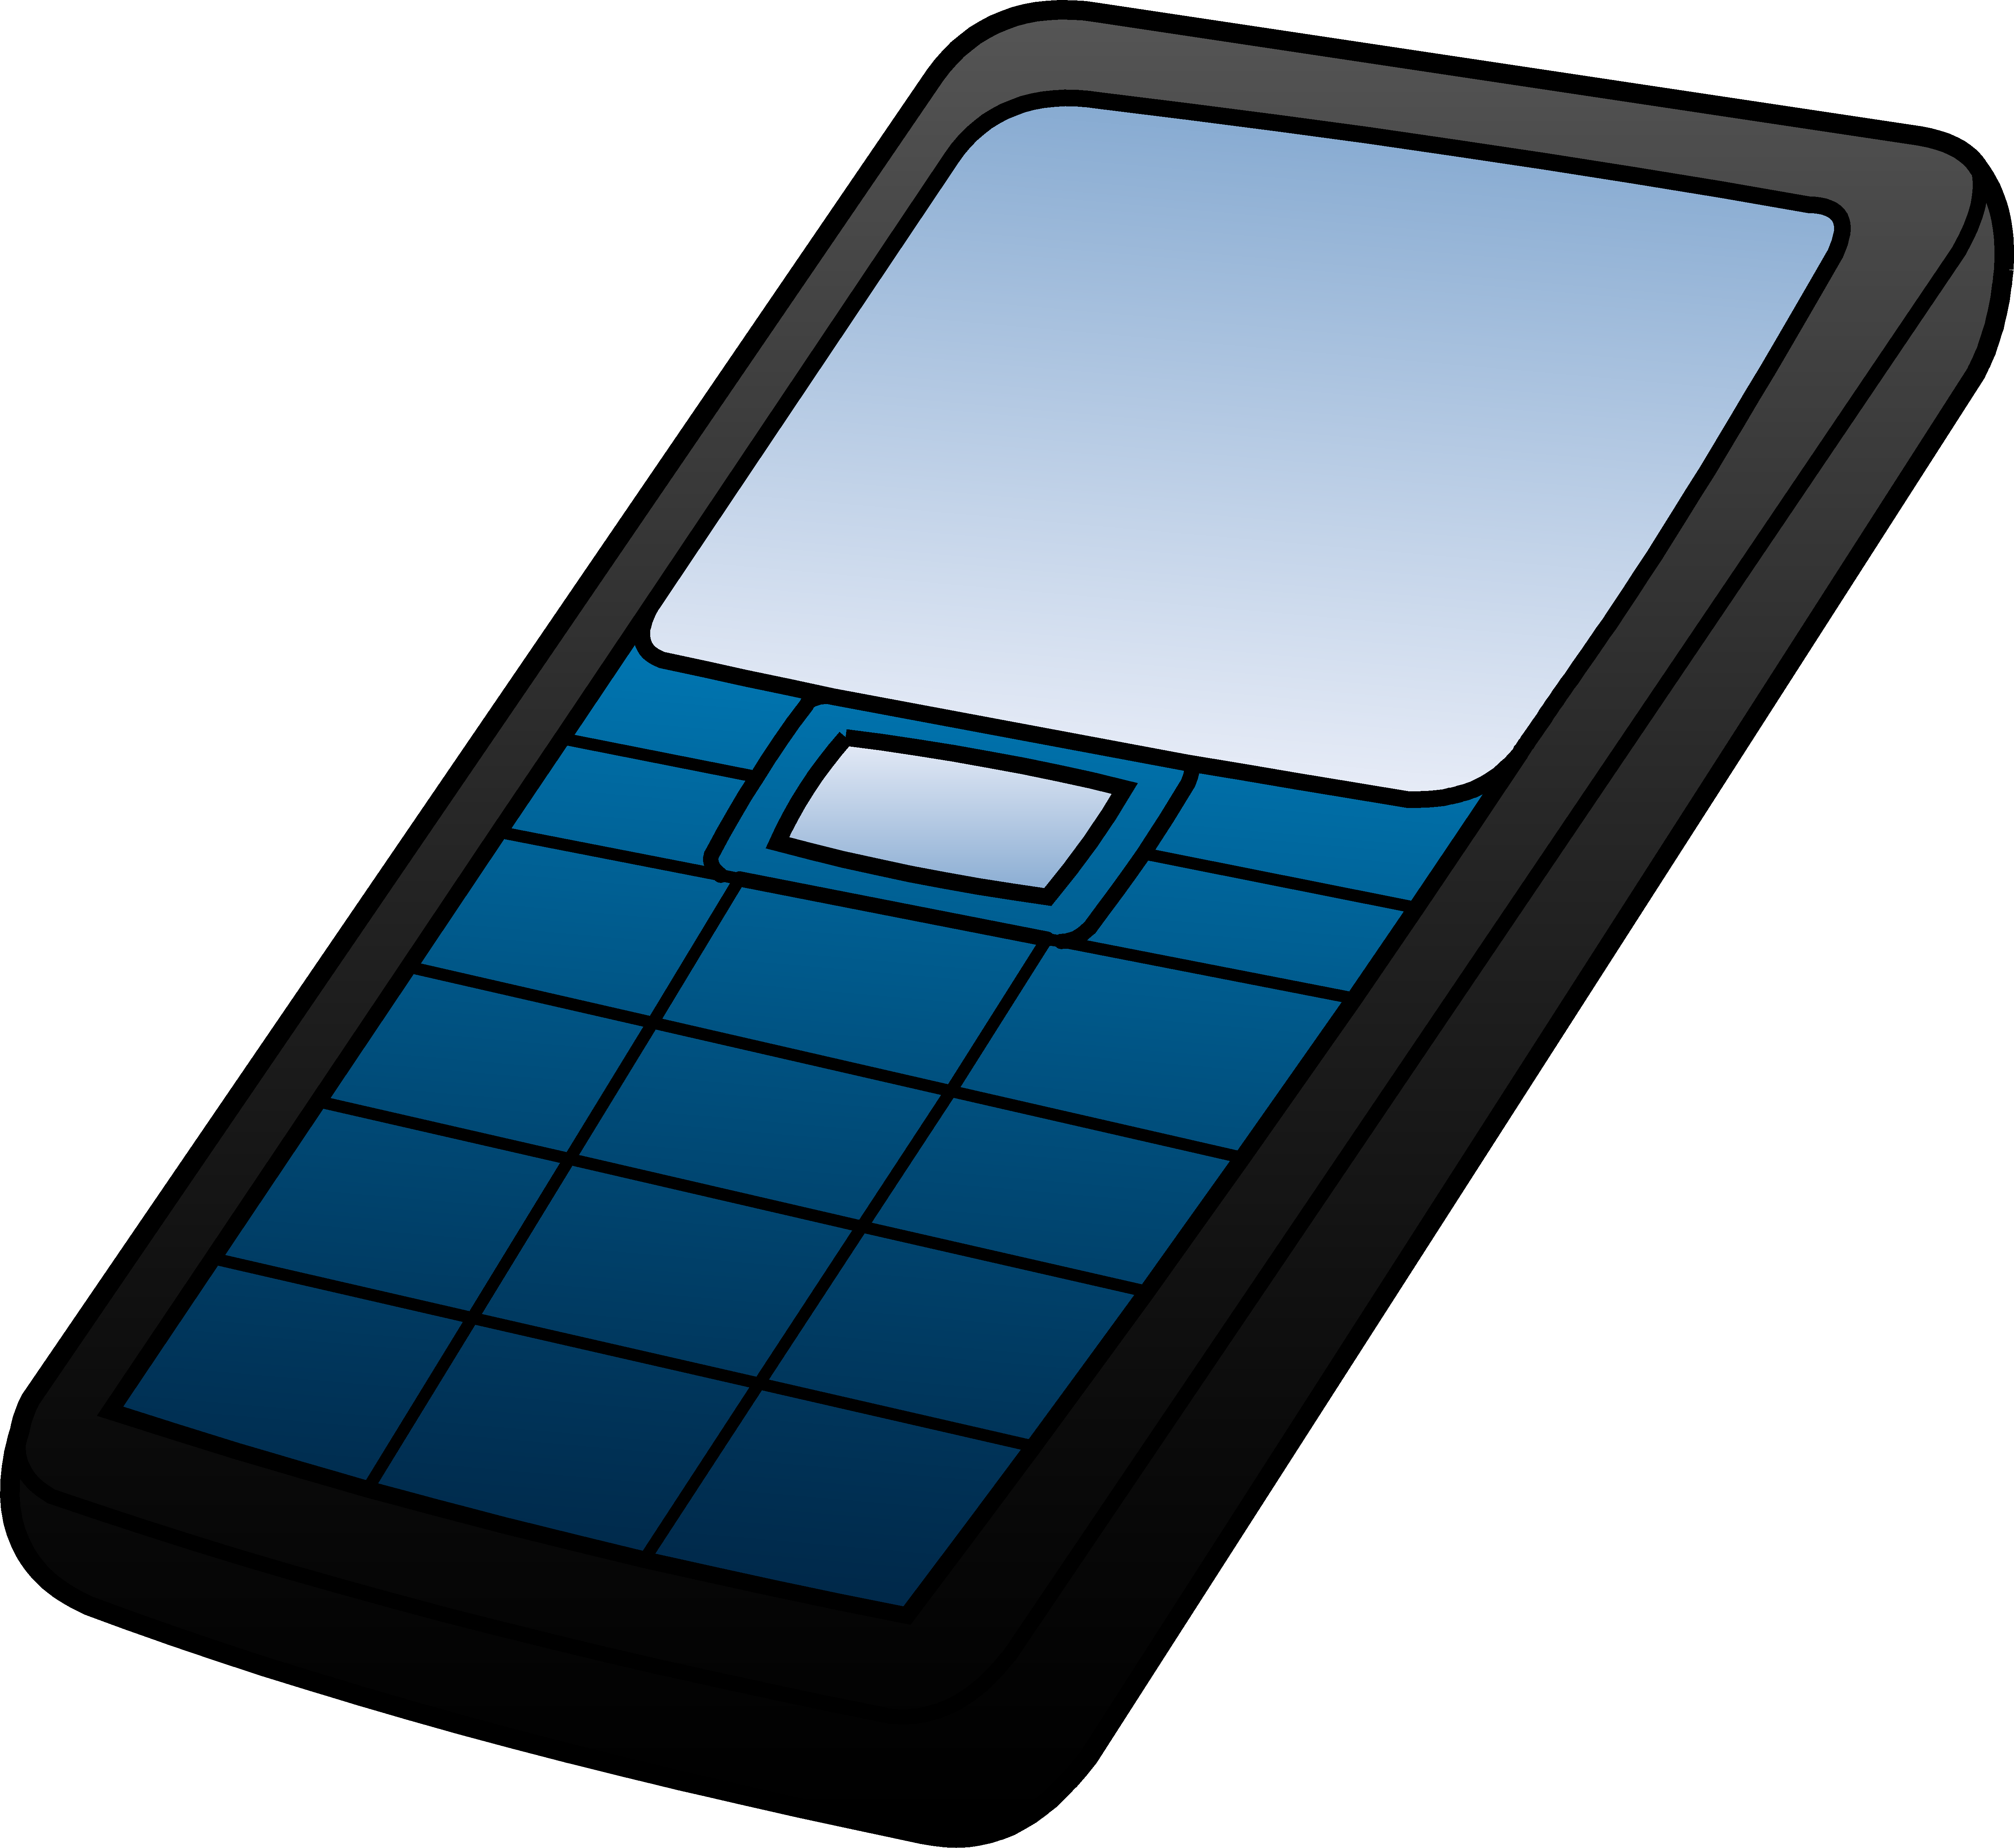 Cell Phone Ringing Clipart-cell phone ringing clipart-4